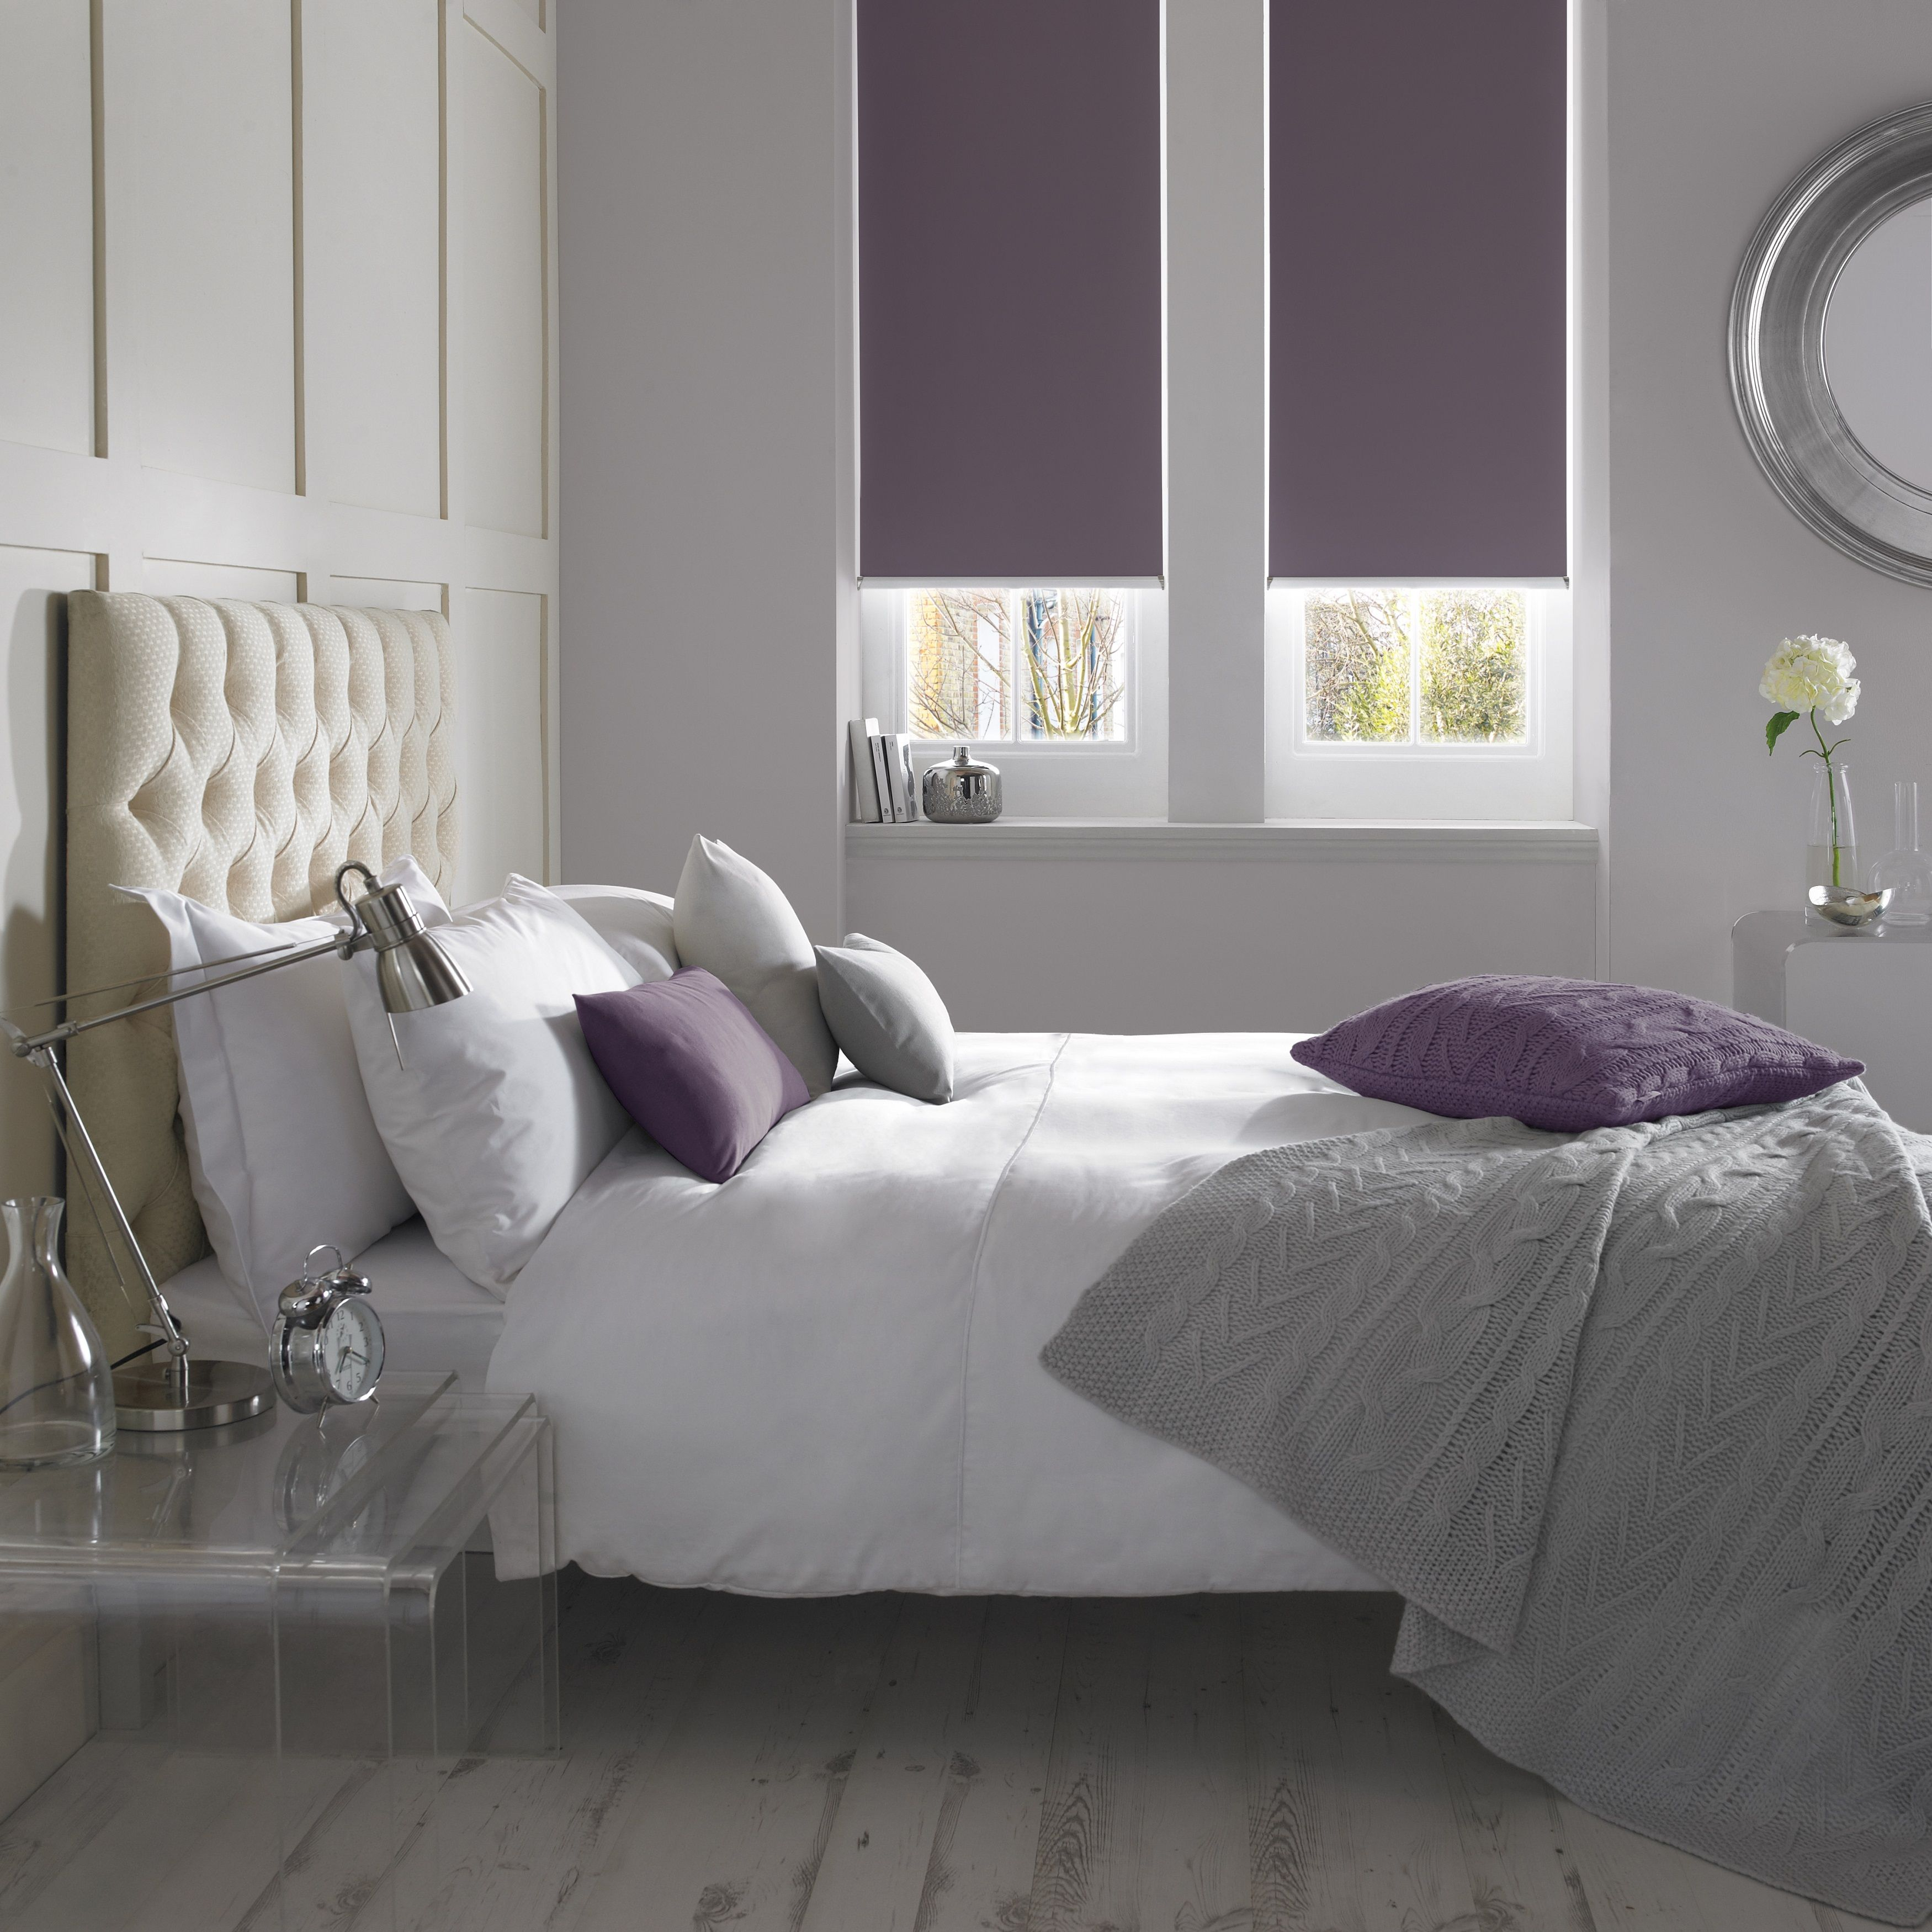 max need gallery photos bed a beds canopy why digest you bedding all studio architectural